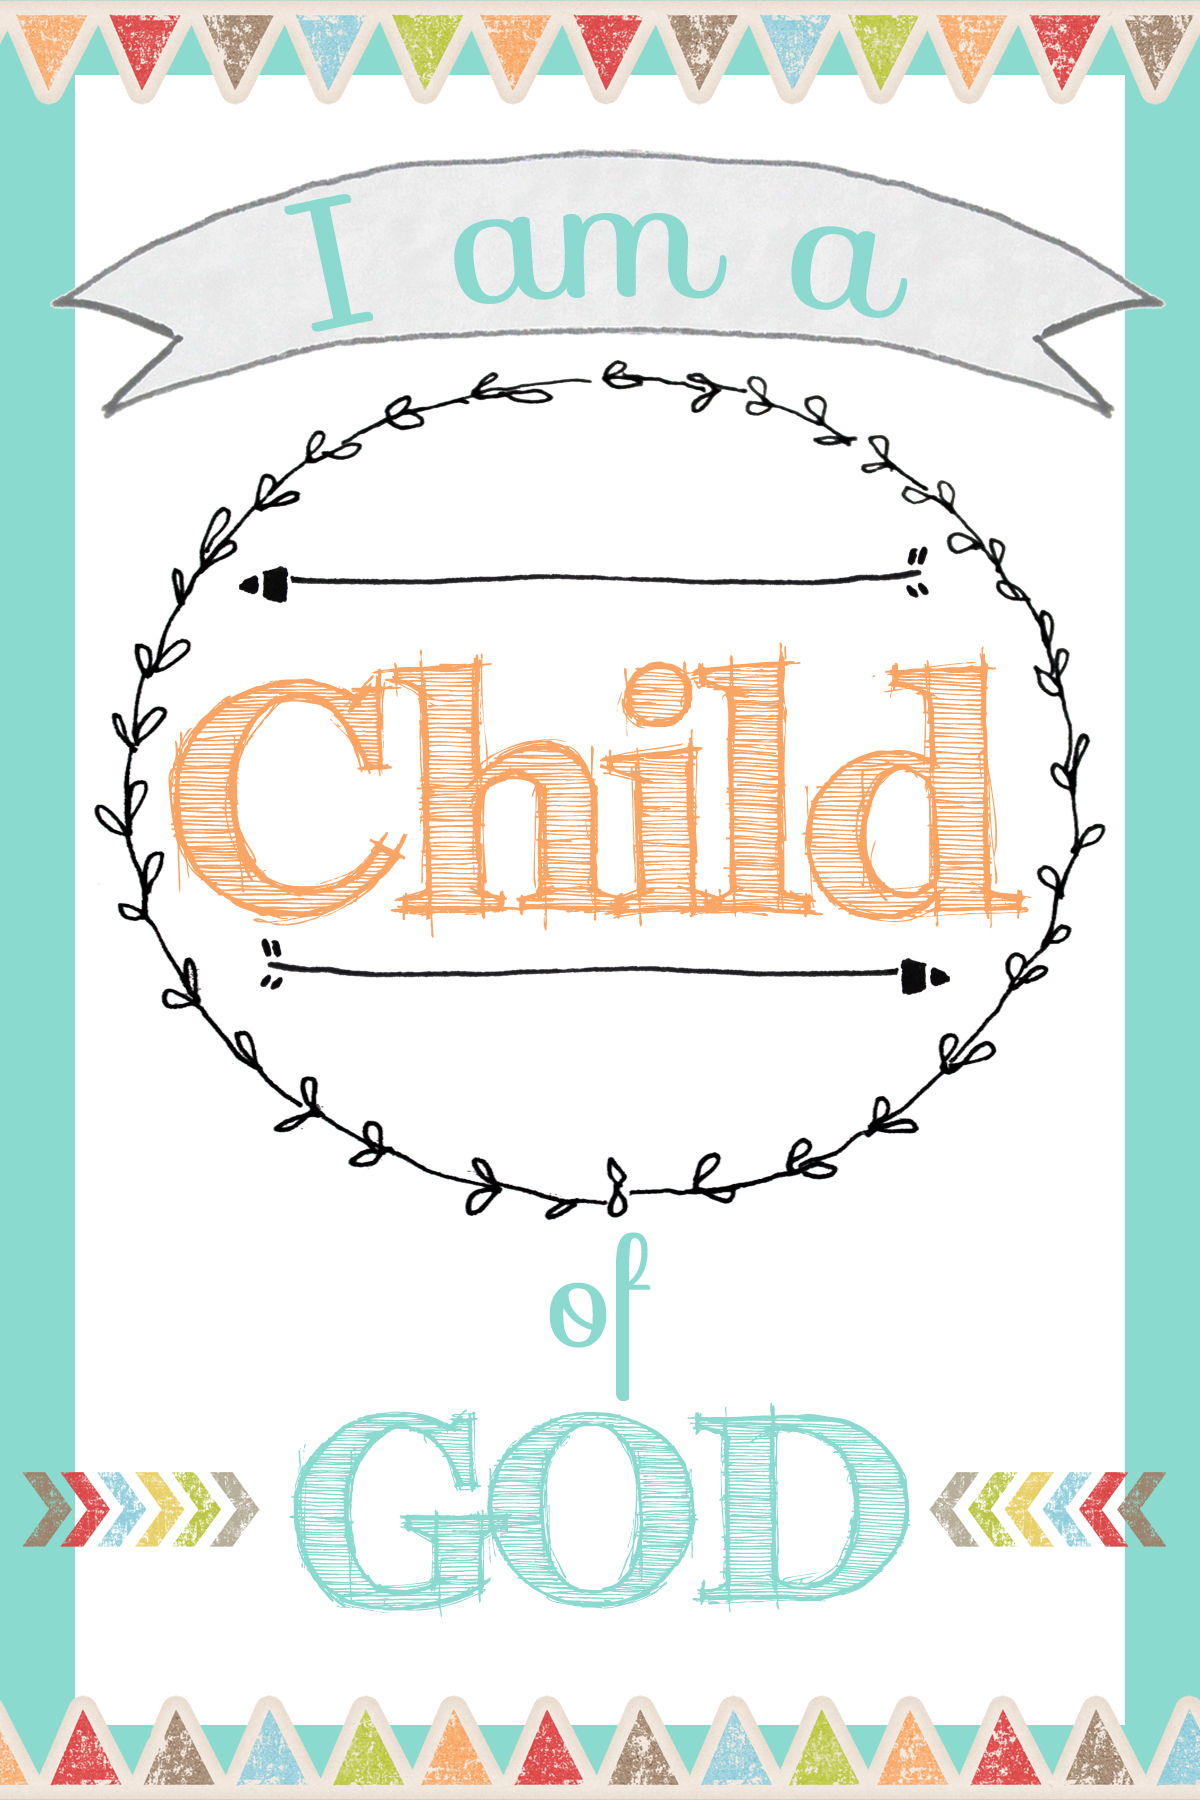 photograph regarding I Am a Child of God Printable called I am a Youngster of God Totally free Printable - Rachaels BookNook